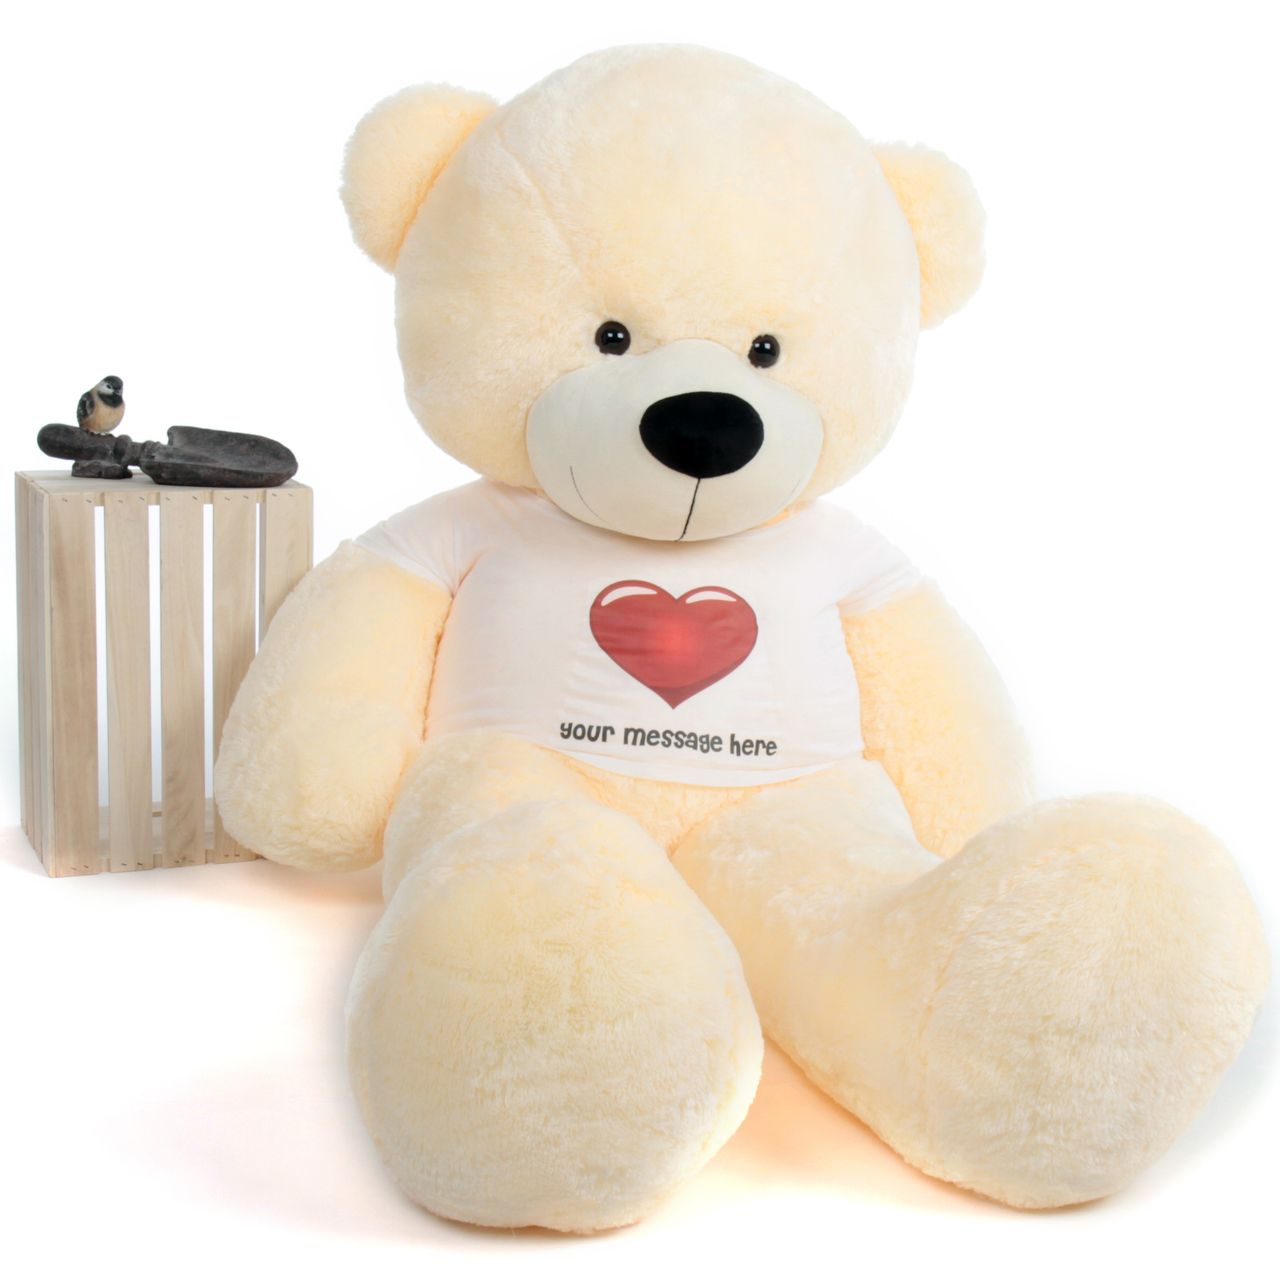 68dfdf0f4a0 Giant Teddy - 6ft life size Personalized Big Teddy Bear Vanilla Cream Red  Heart Shirt